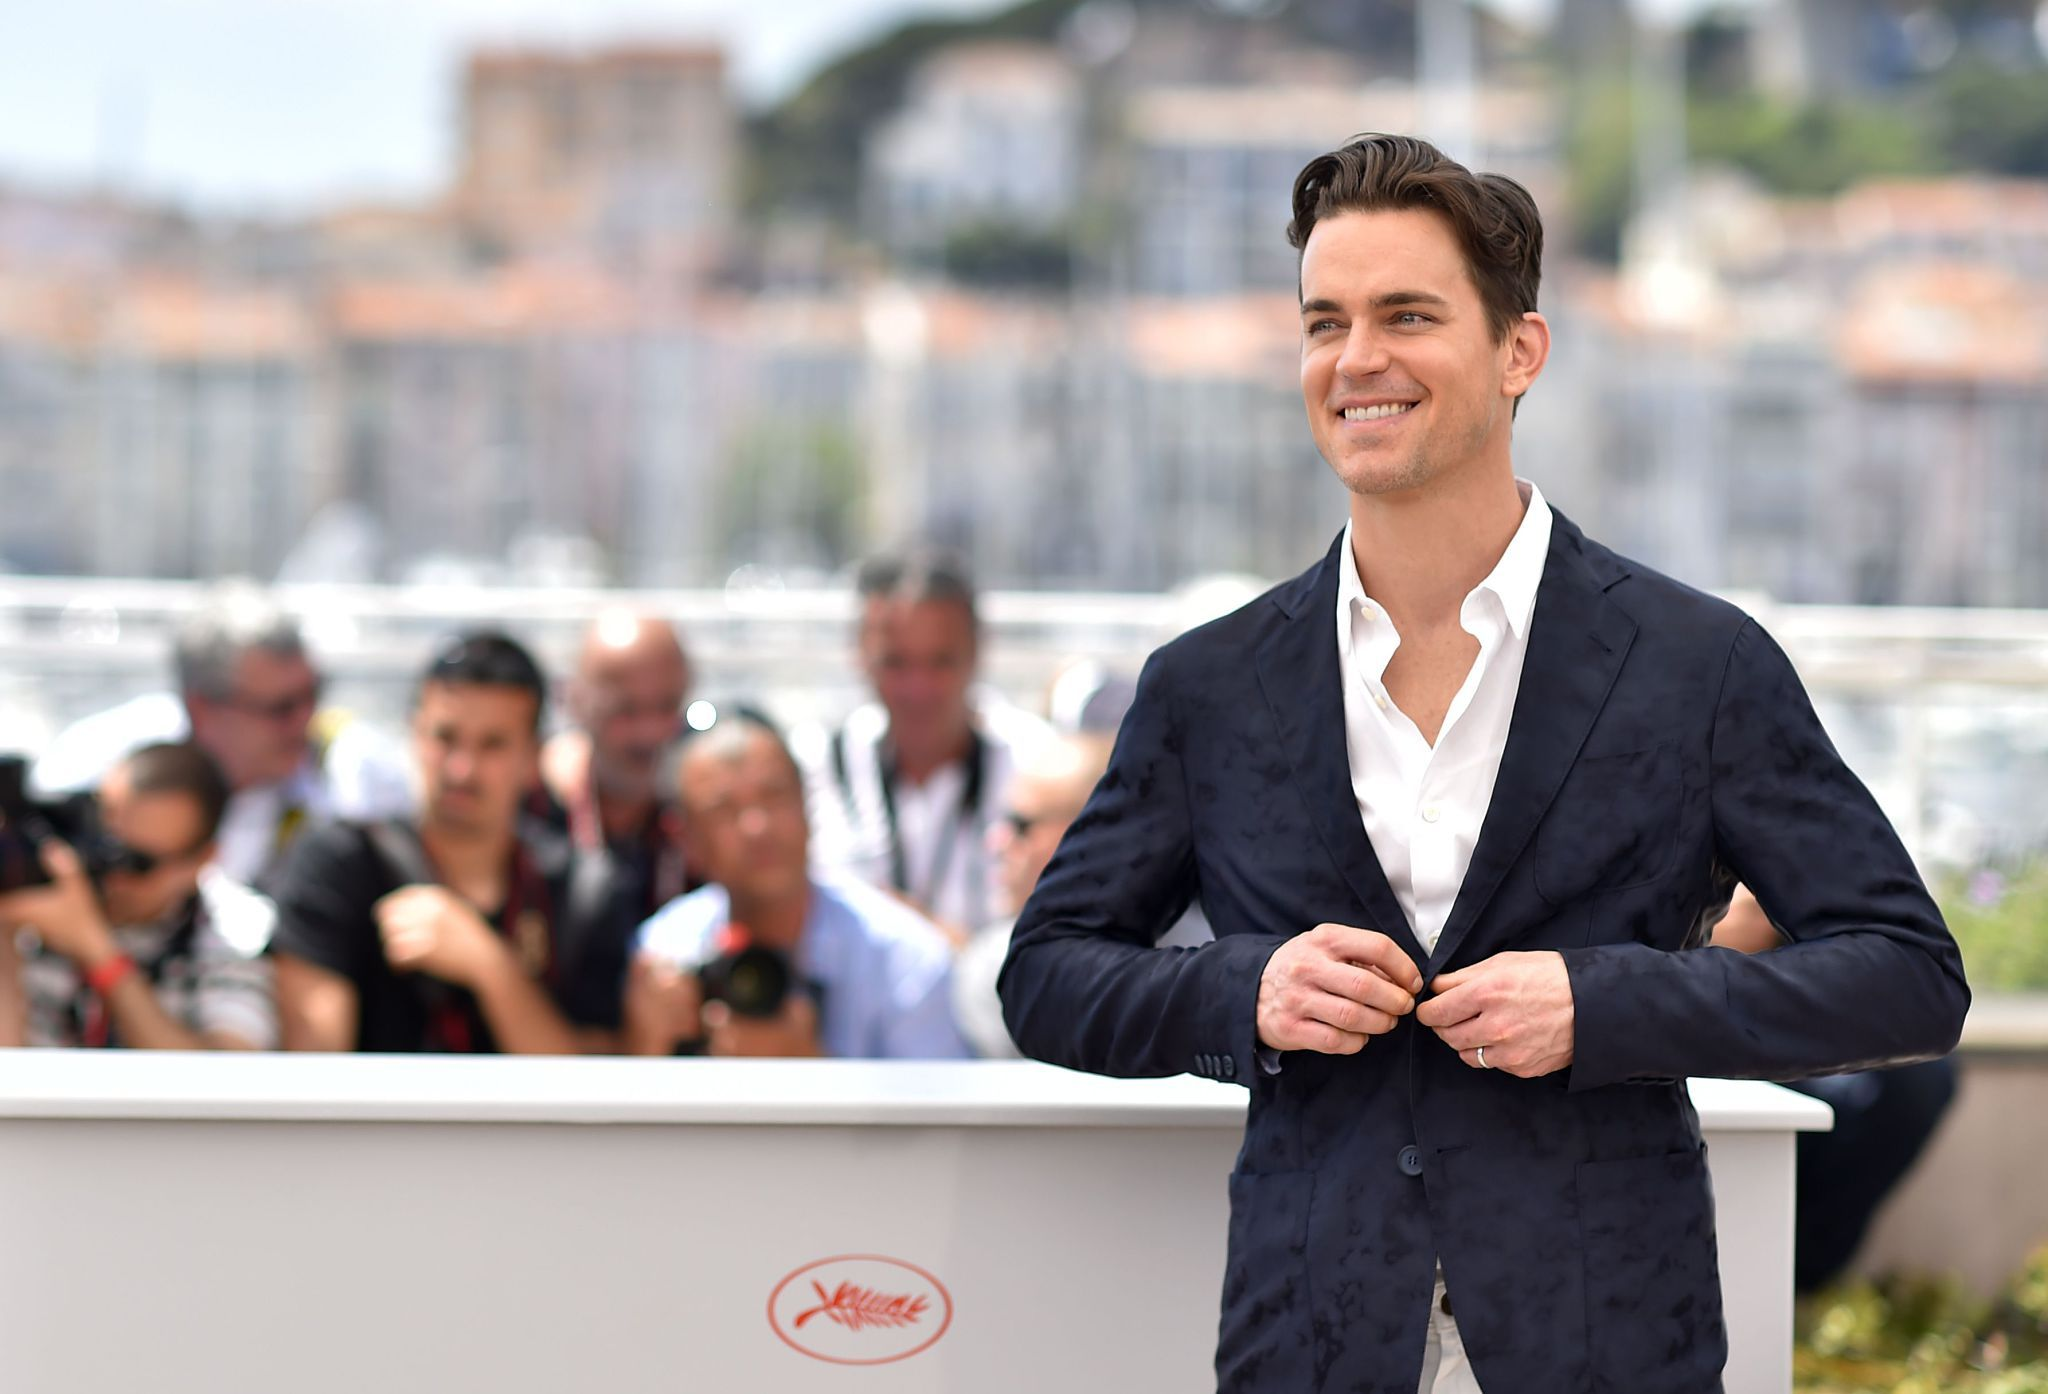 Cannes photocall (May 2016)